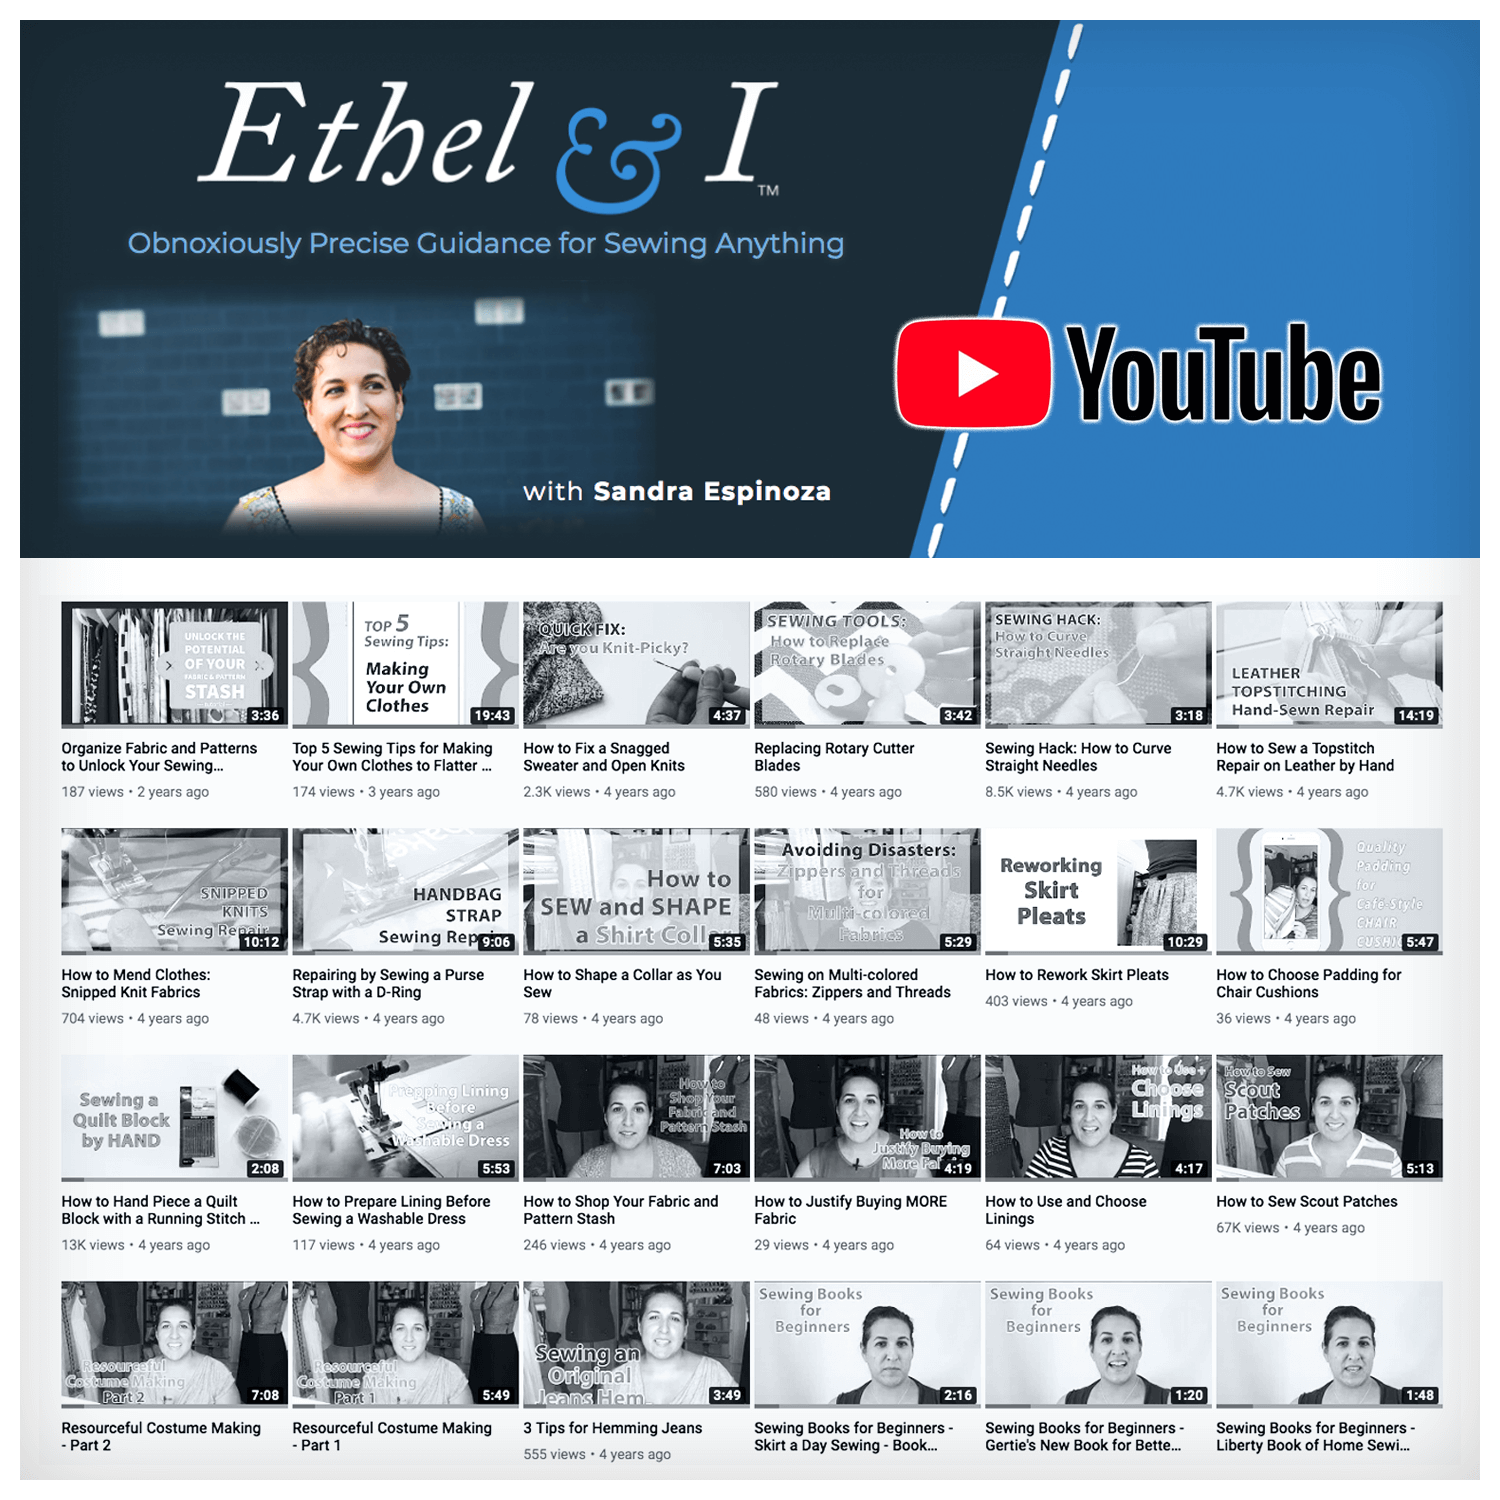 ethel & i - youtube channel graphics